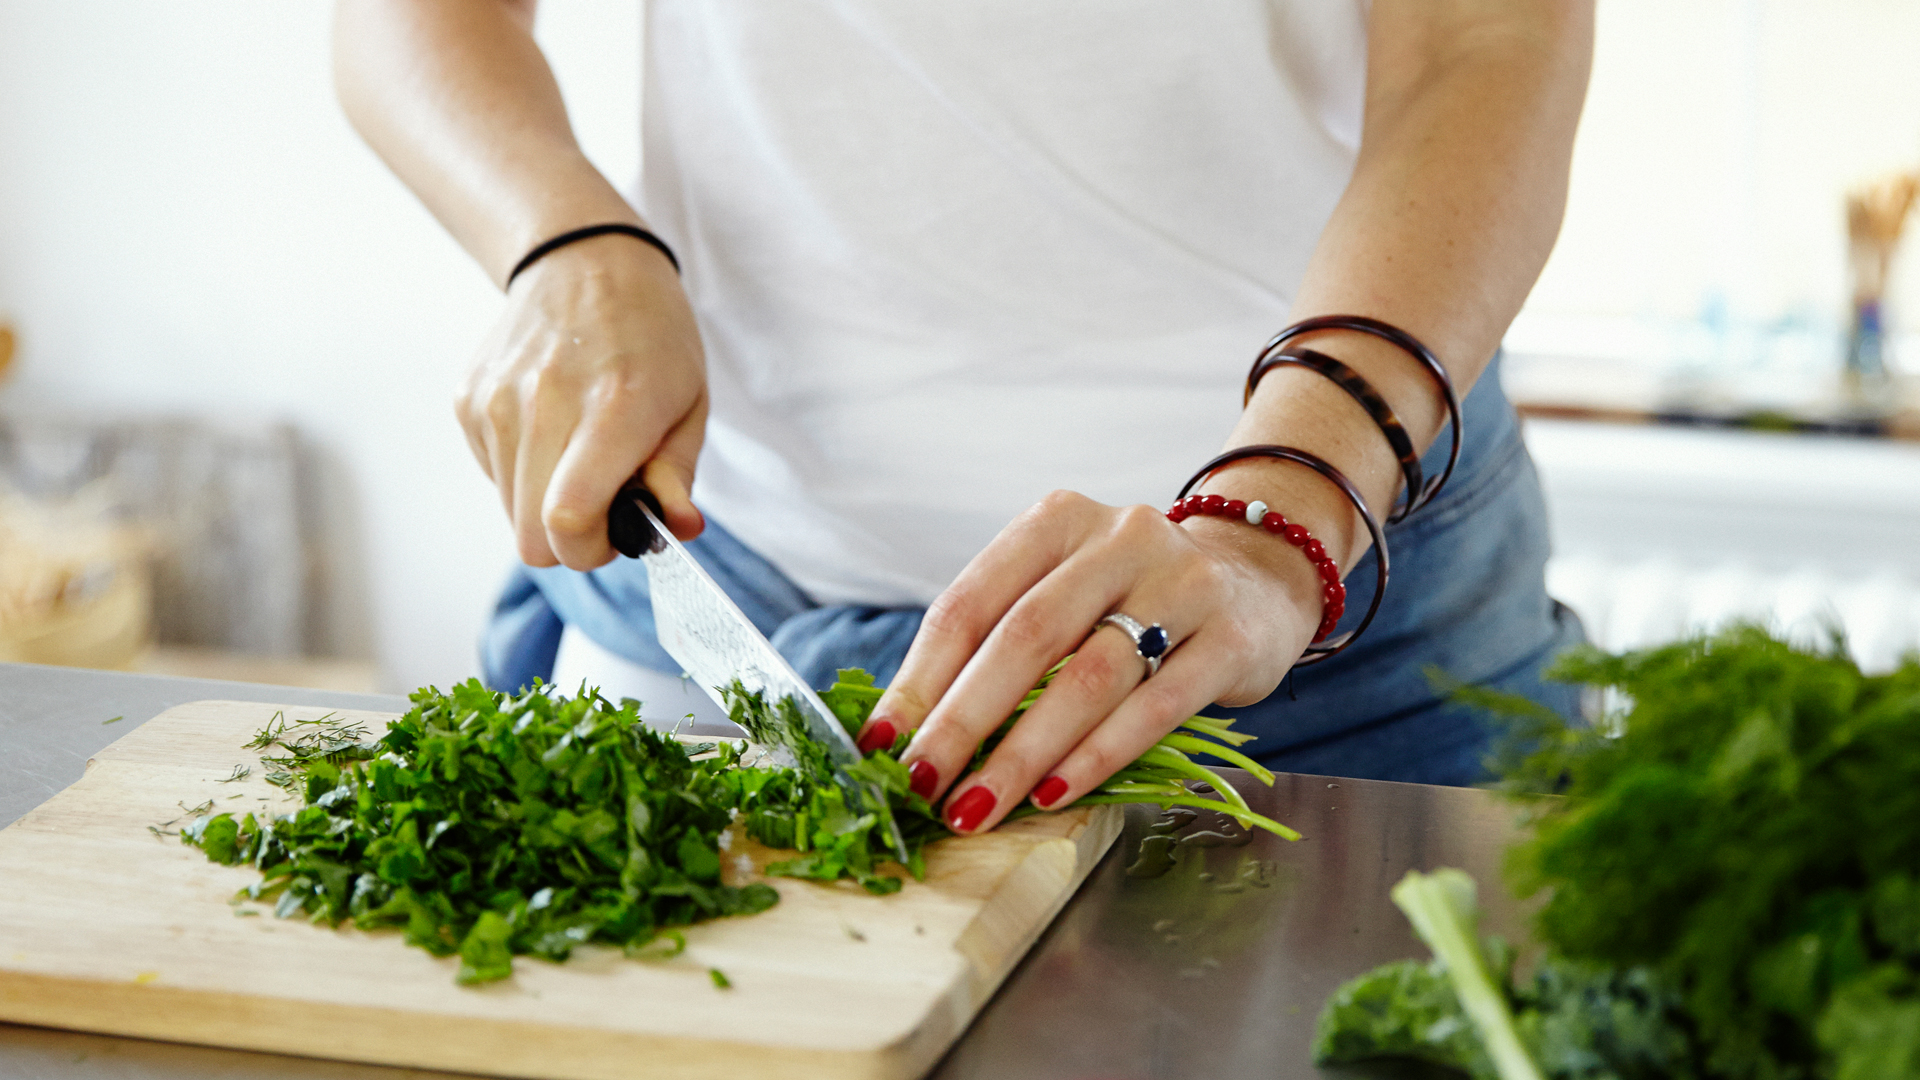 catherine-cuello-chopping-herbs-for-her-recipe-for-french-lentils-with-a-ton-of-herbs-foodadit